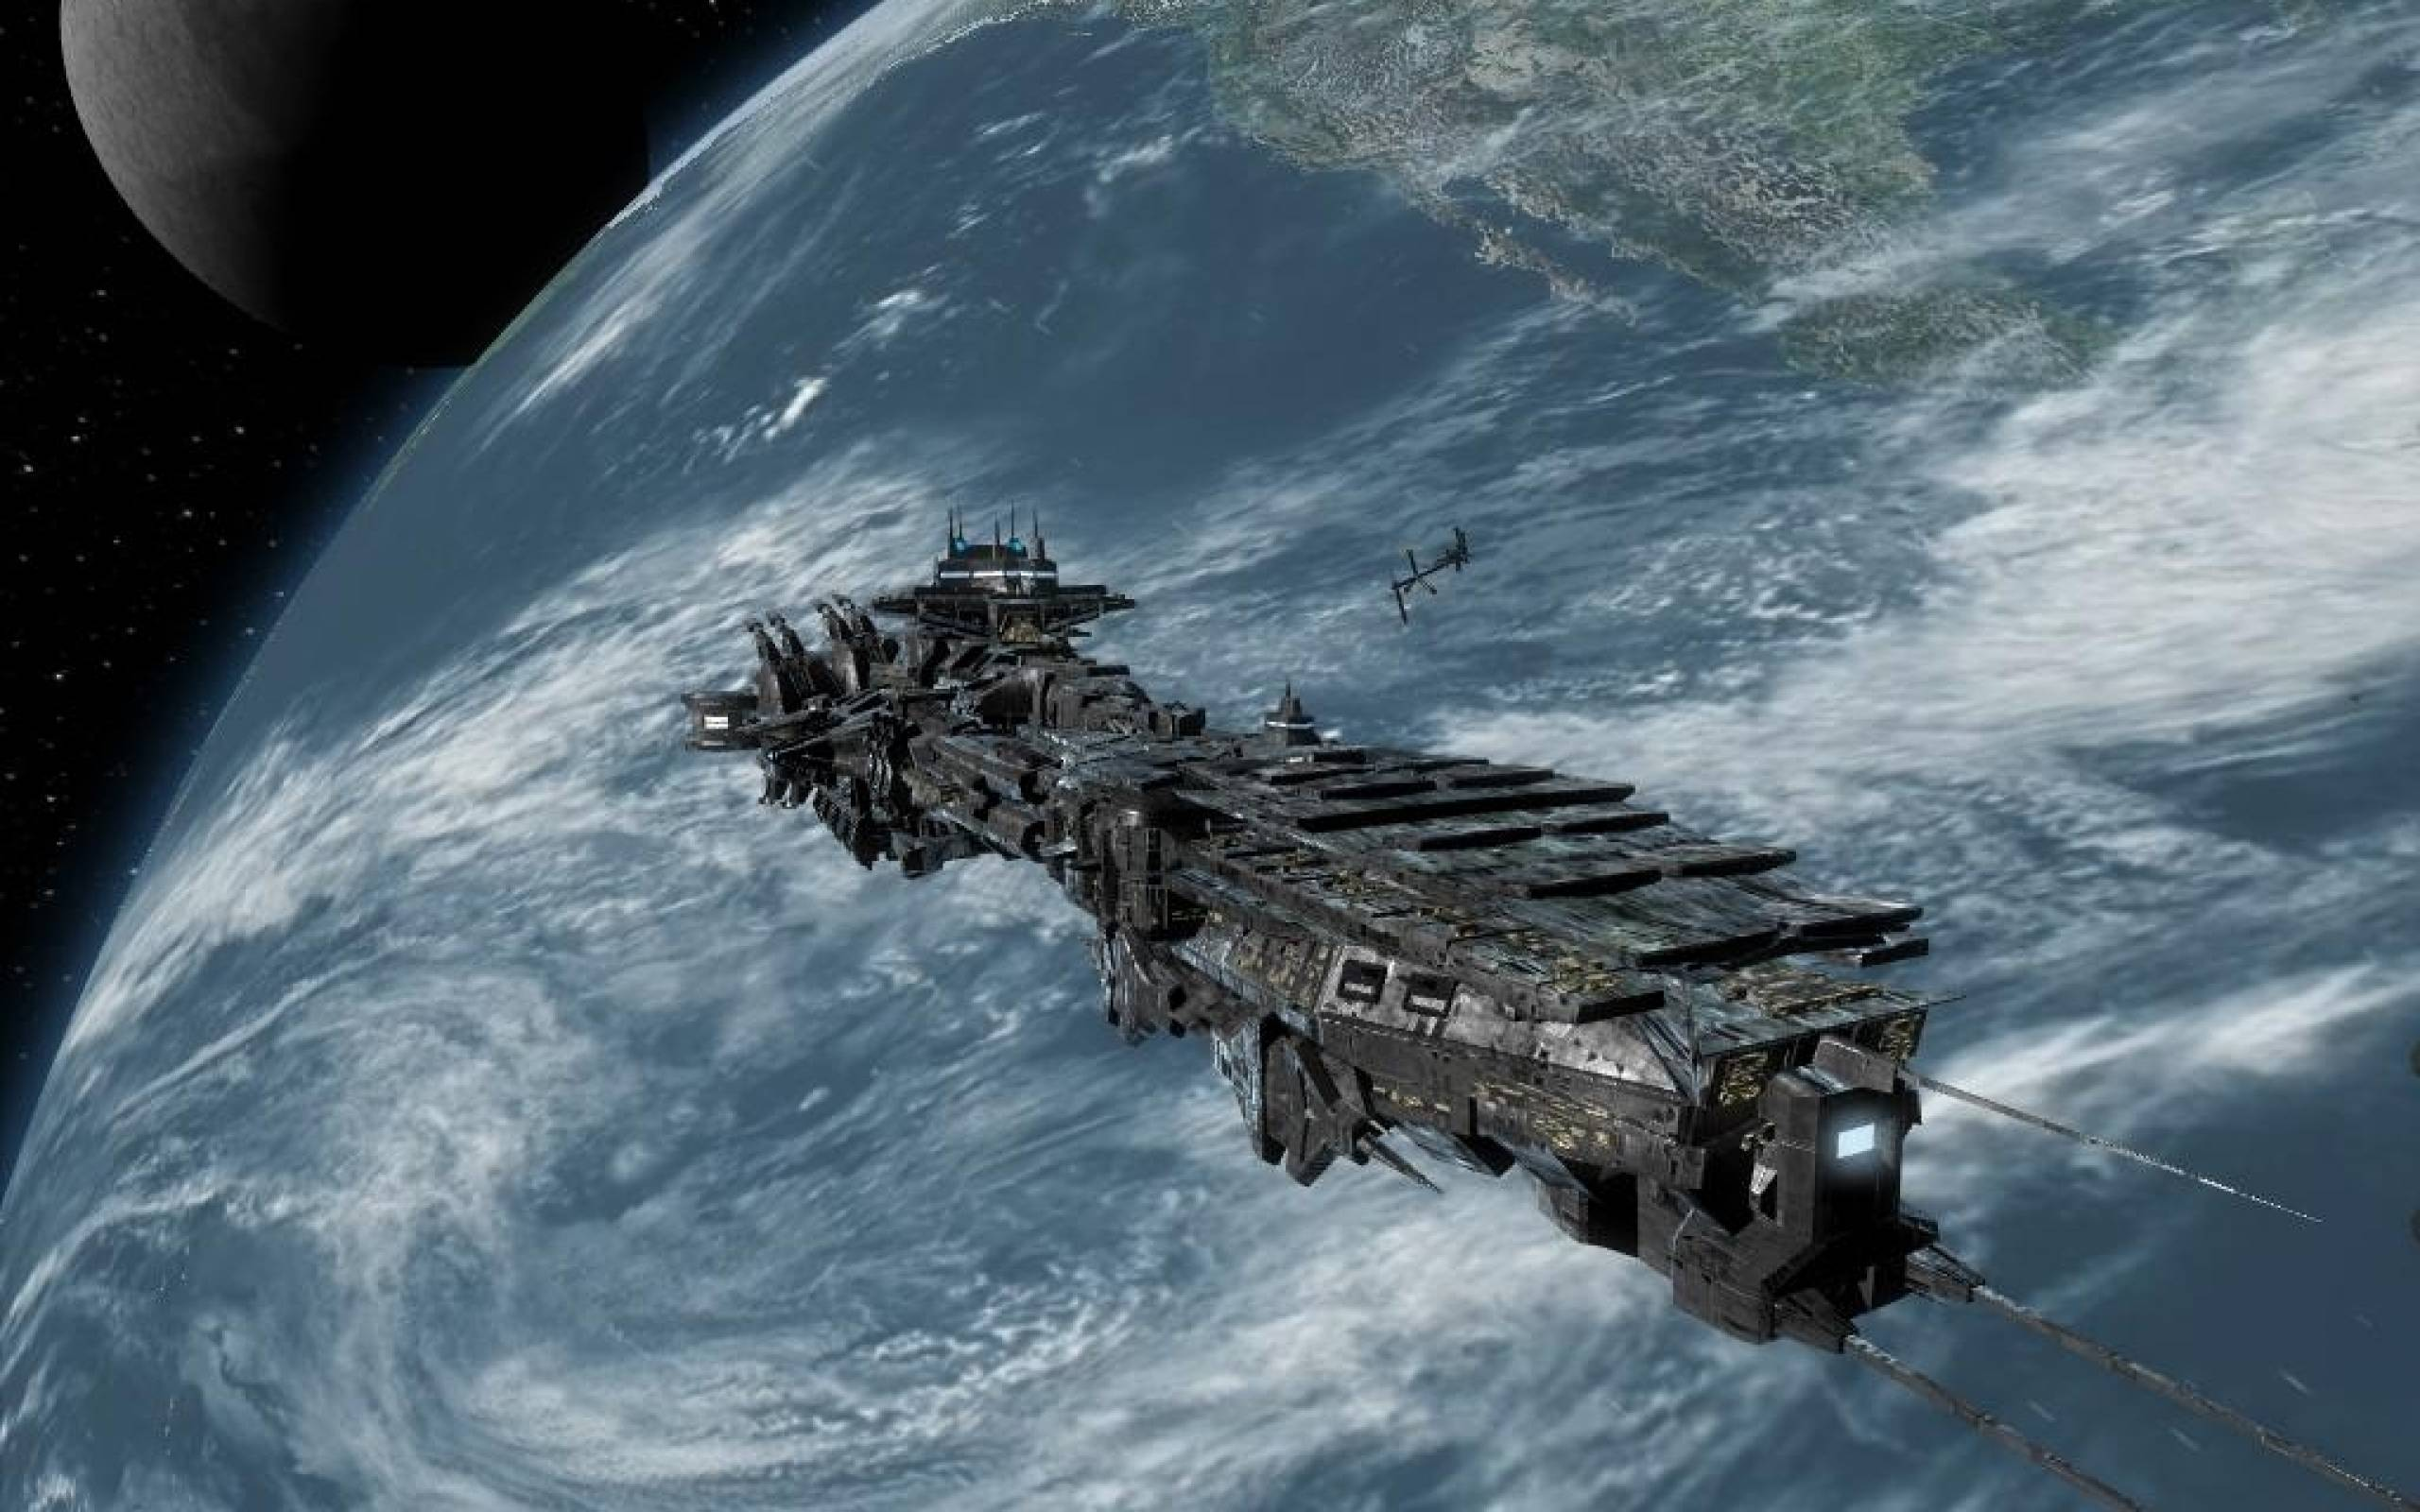 sci_fi_science_fiction_spaceship_wallpaper_high_resolution